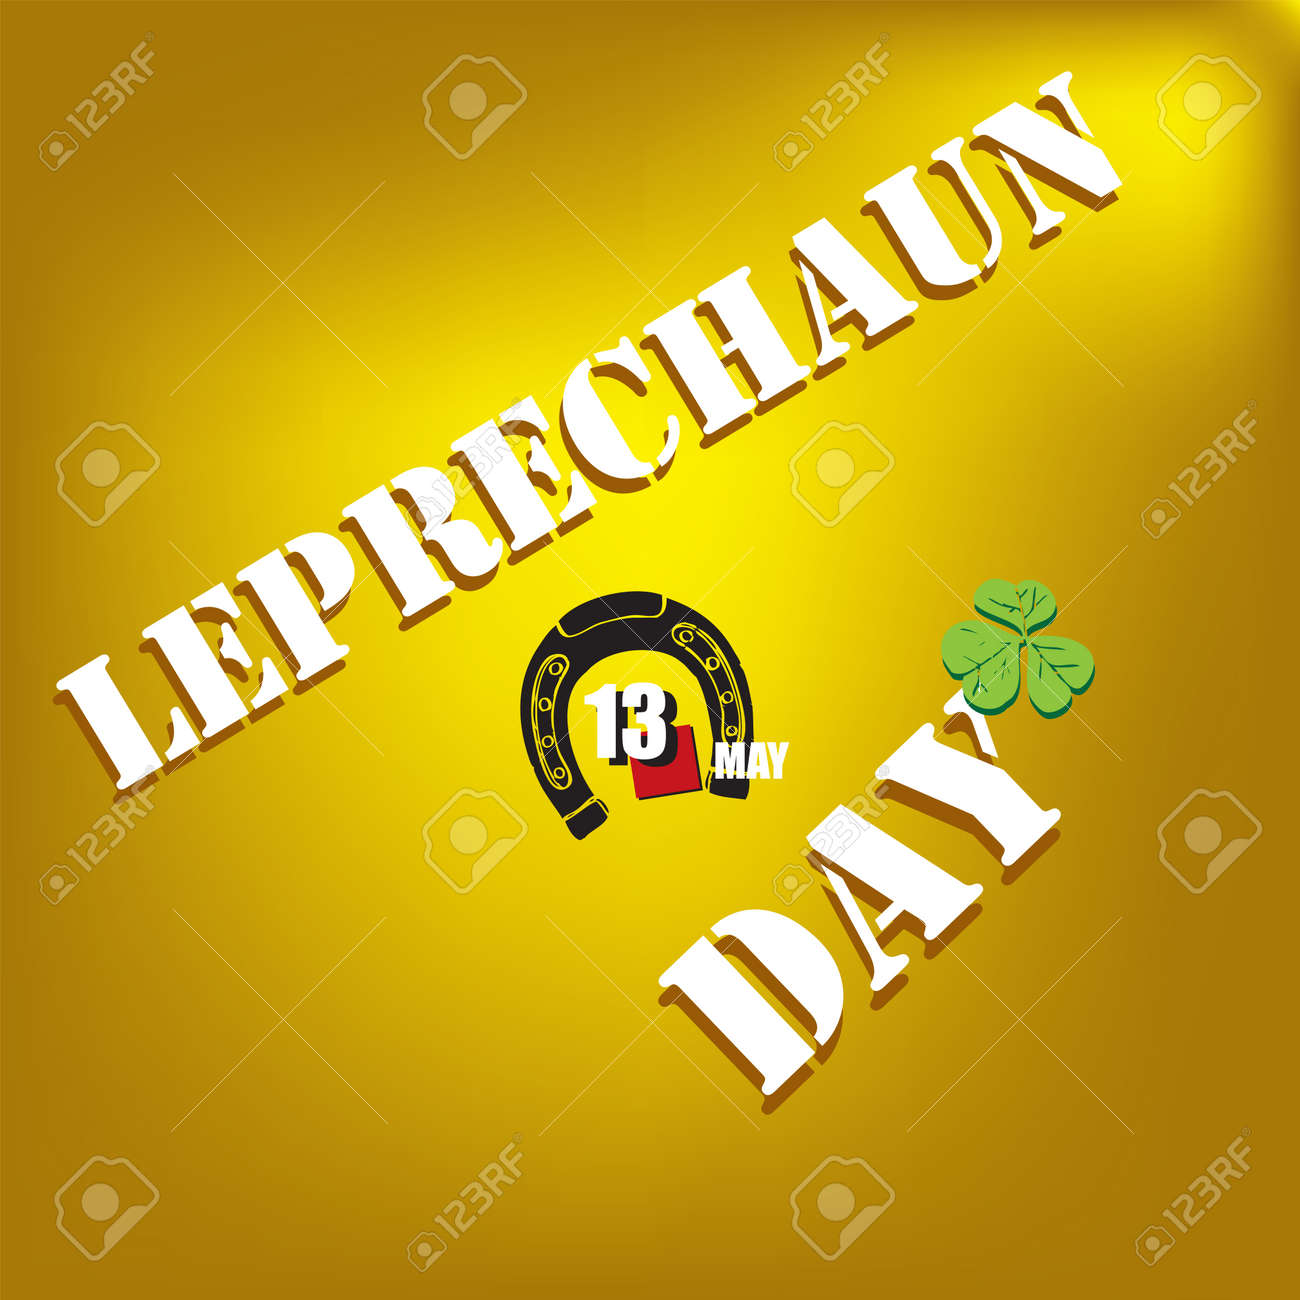 The calendar event is celebrated in may - Leprechaun Day - 169676018